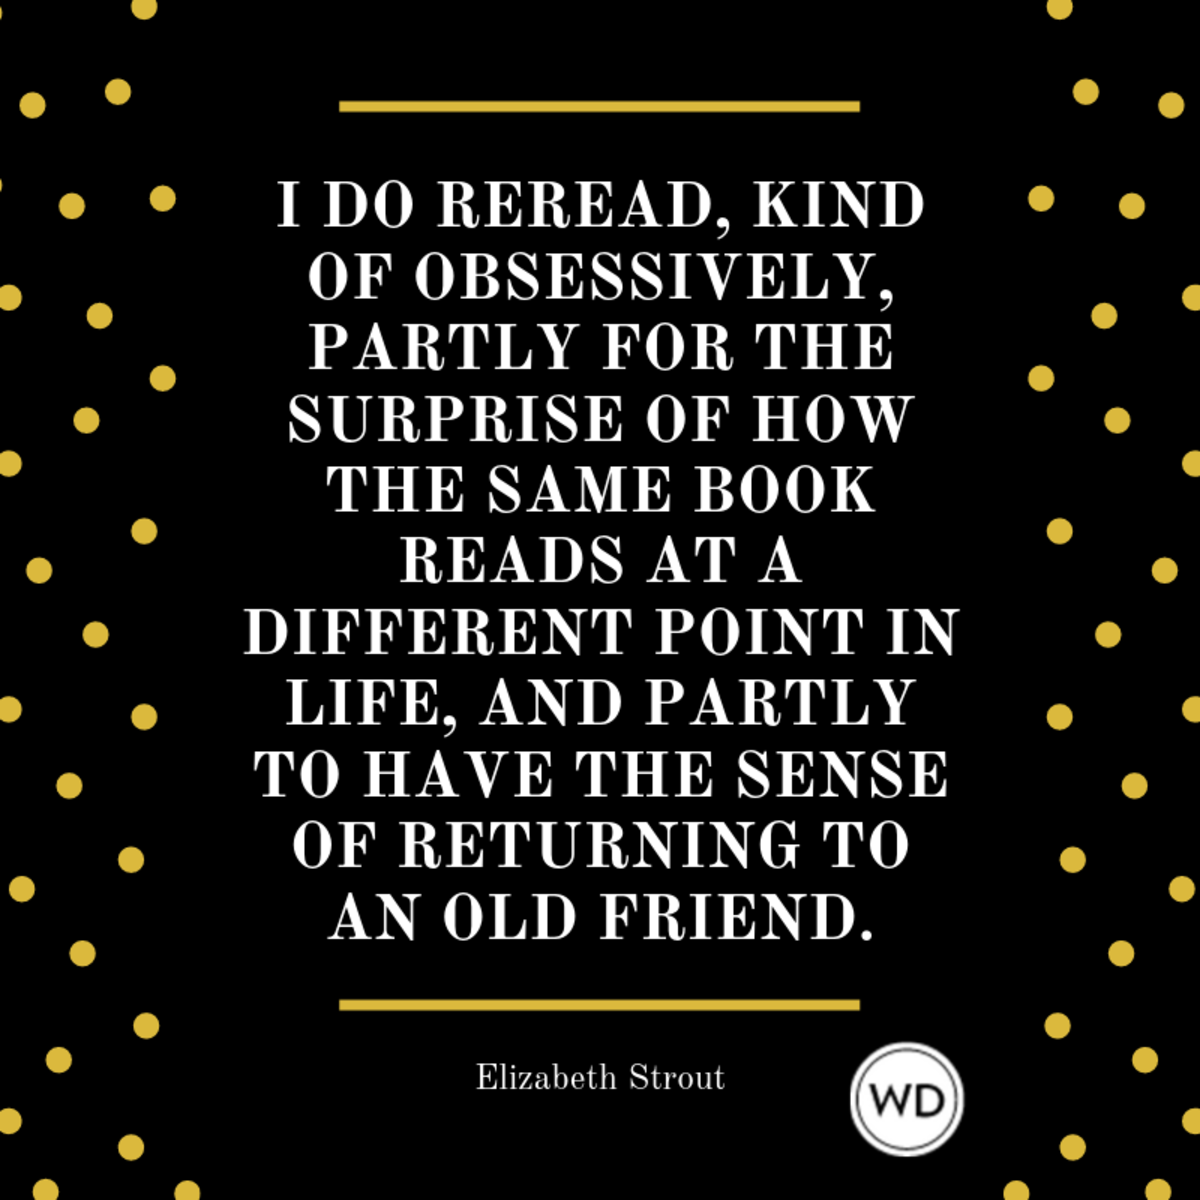 Elizabeth Strout quote